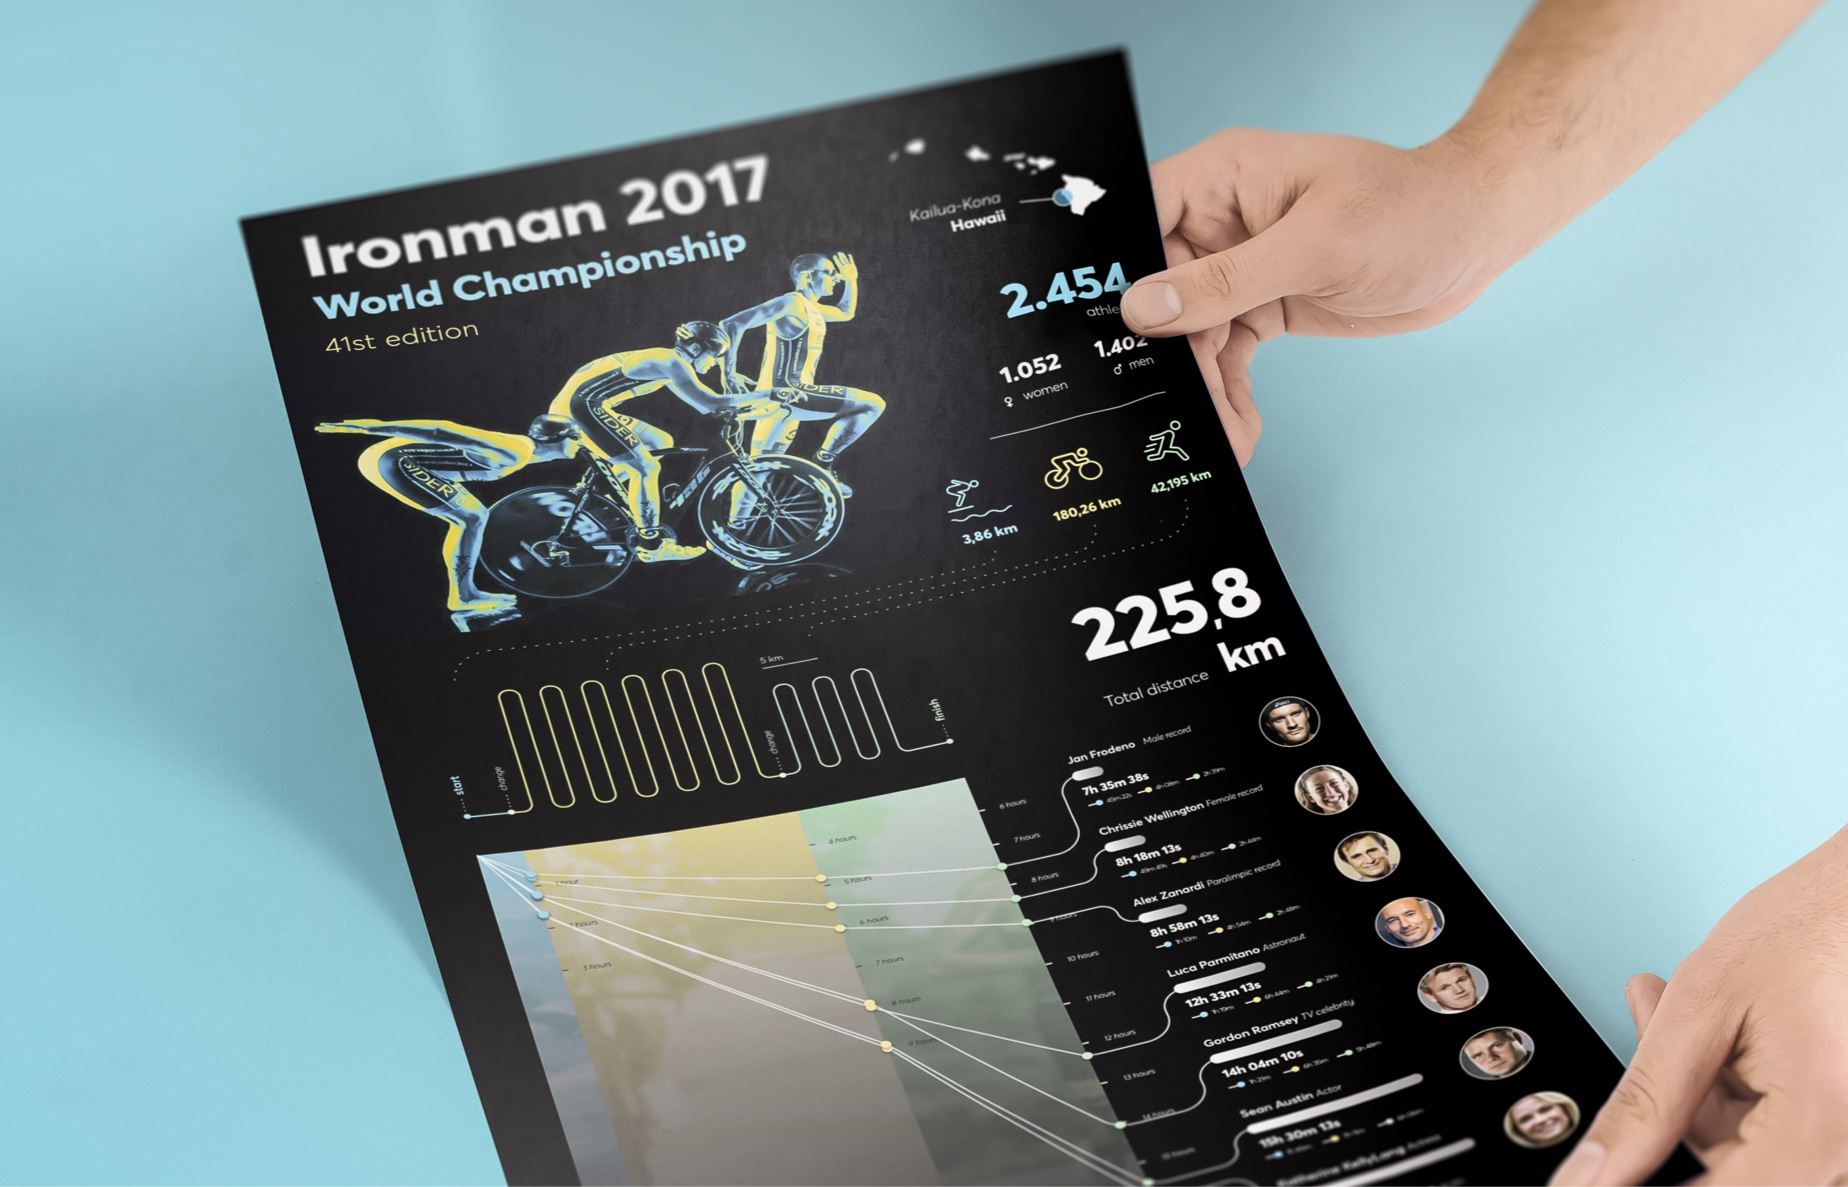 Holding the printed version of the Ironman World Championship 2017 Infographic by Fabio Besti